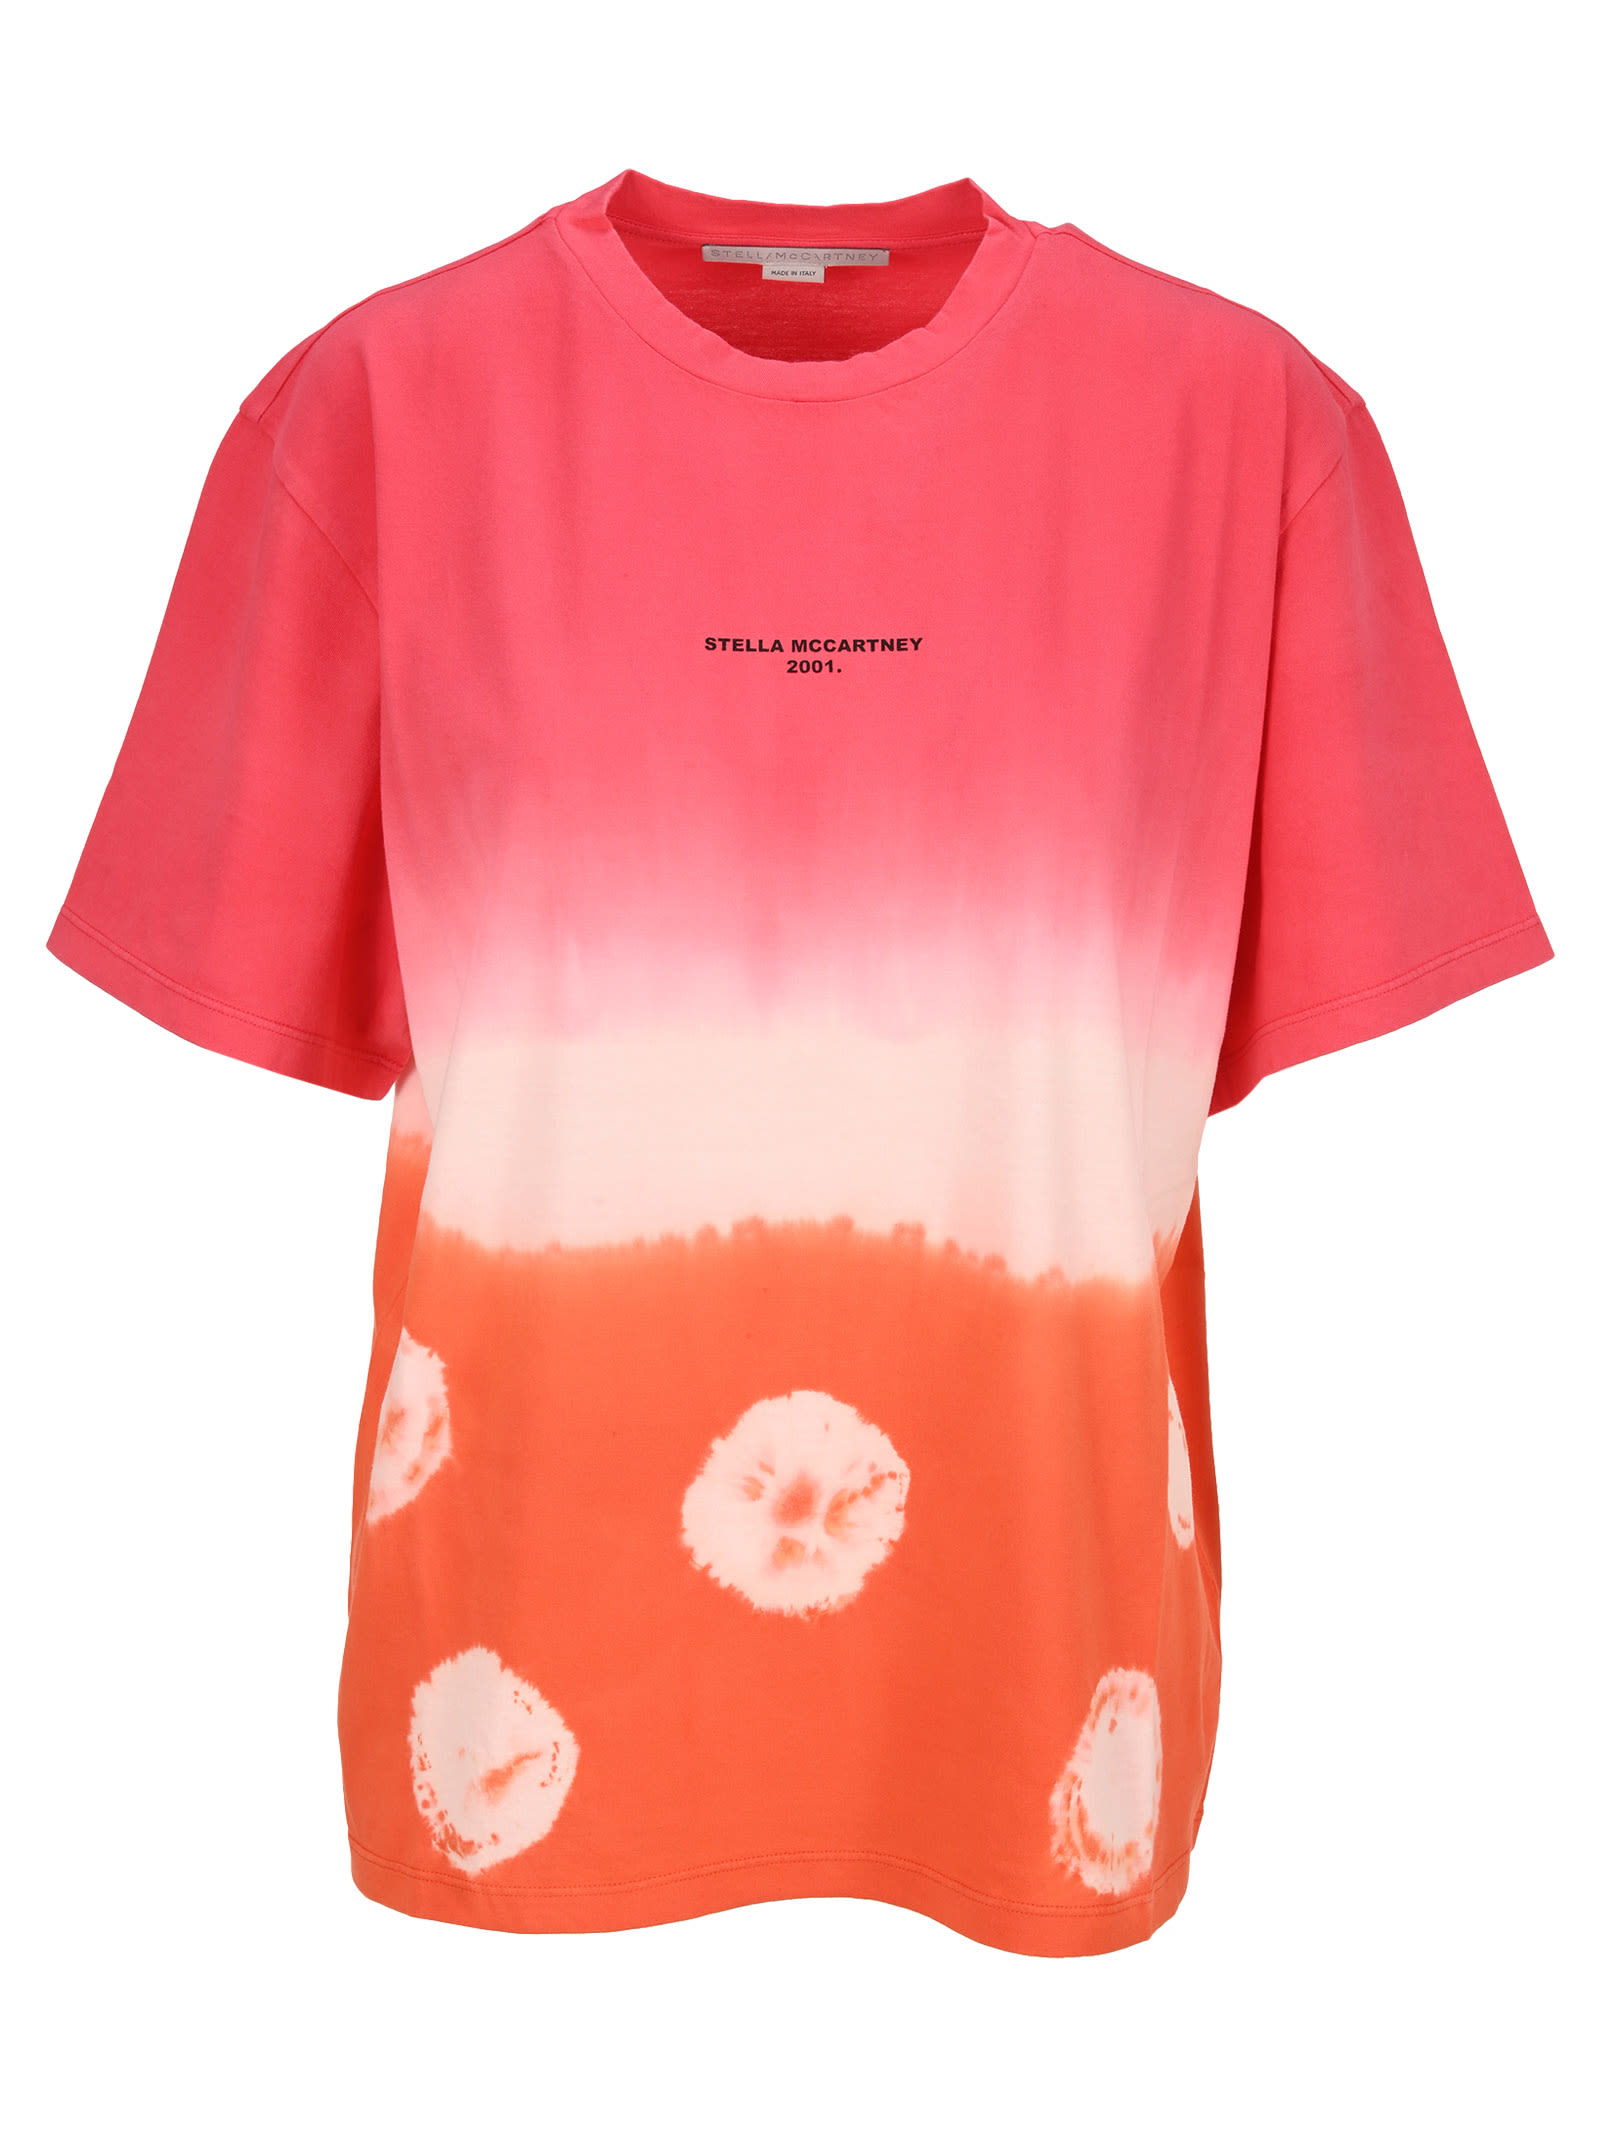 Stella Mccartney Gradient Tie-dye T-shirt